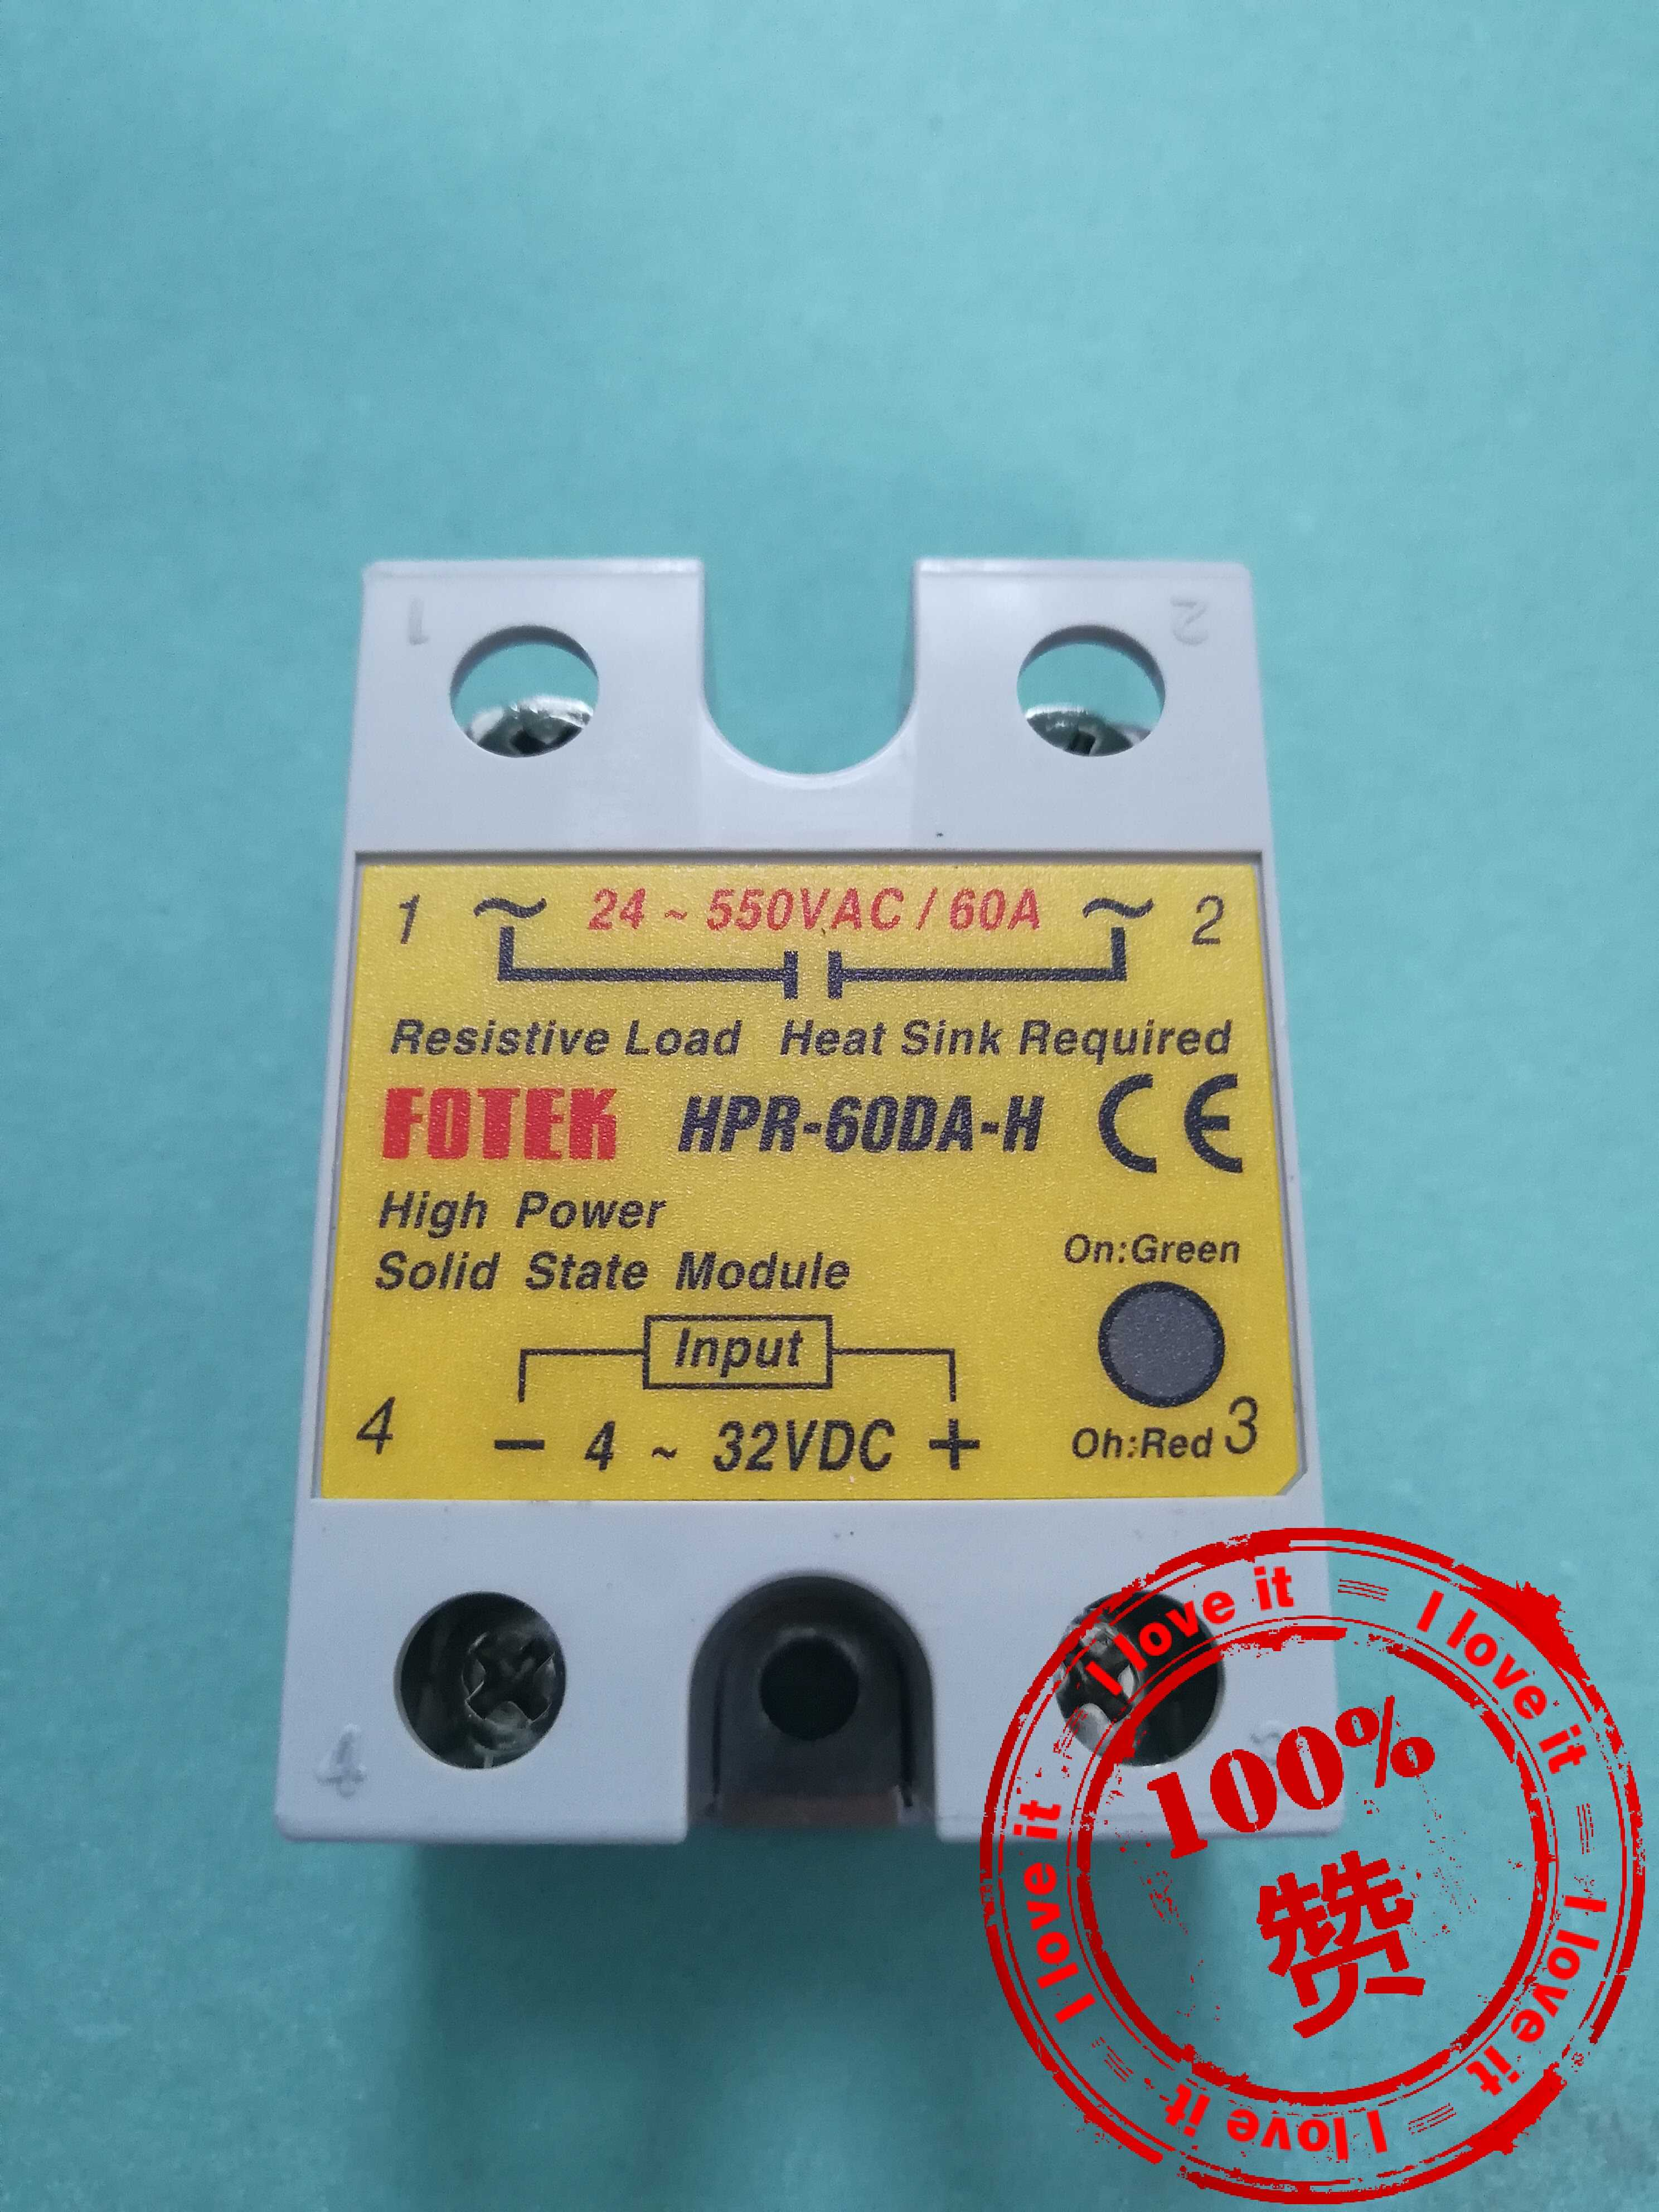 HPR-60DA-H High Voltage High Power Solid State RelayHPR-60DA-H High Voltage High Power Solid State Relay